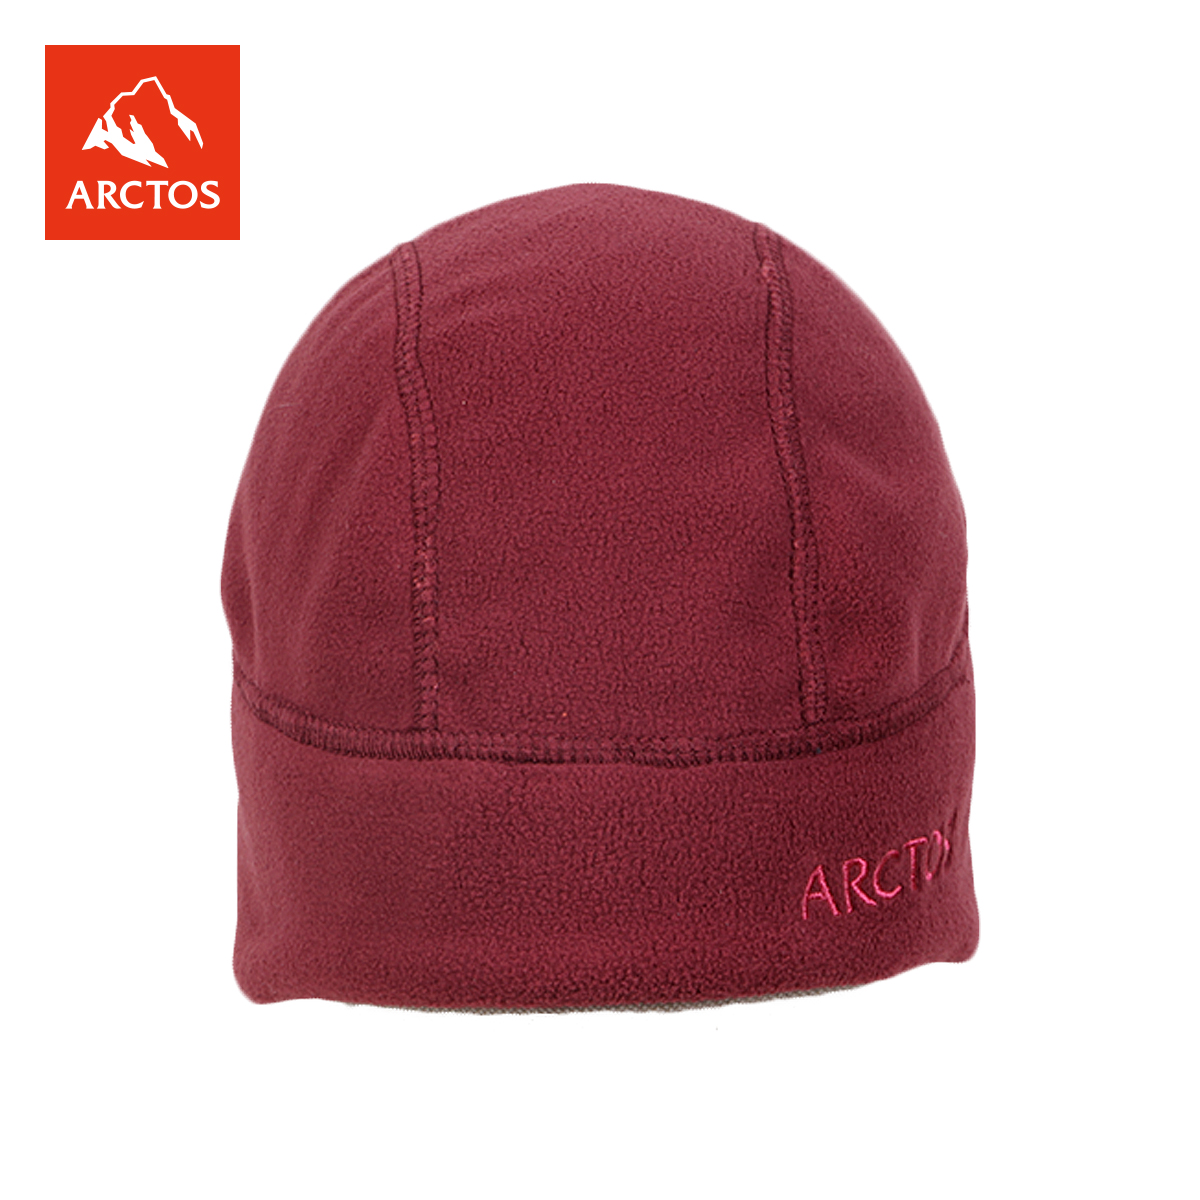 Arknav outdoor fleece women warm spring and autumn and winter sports cap hat  travel hiking sports 6cf45007175